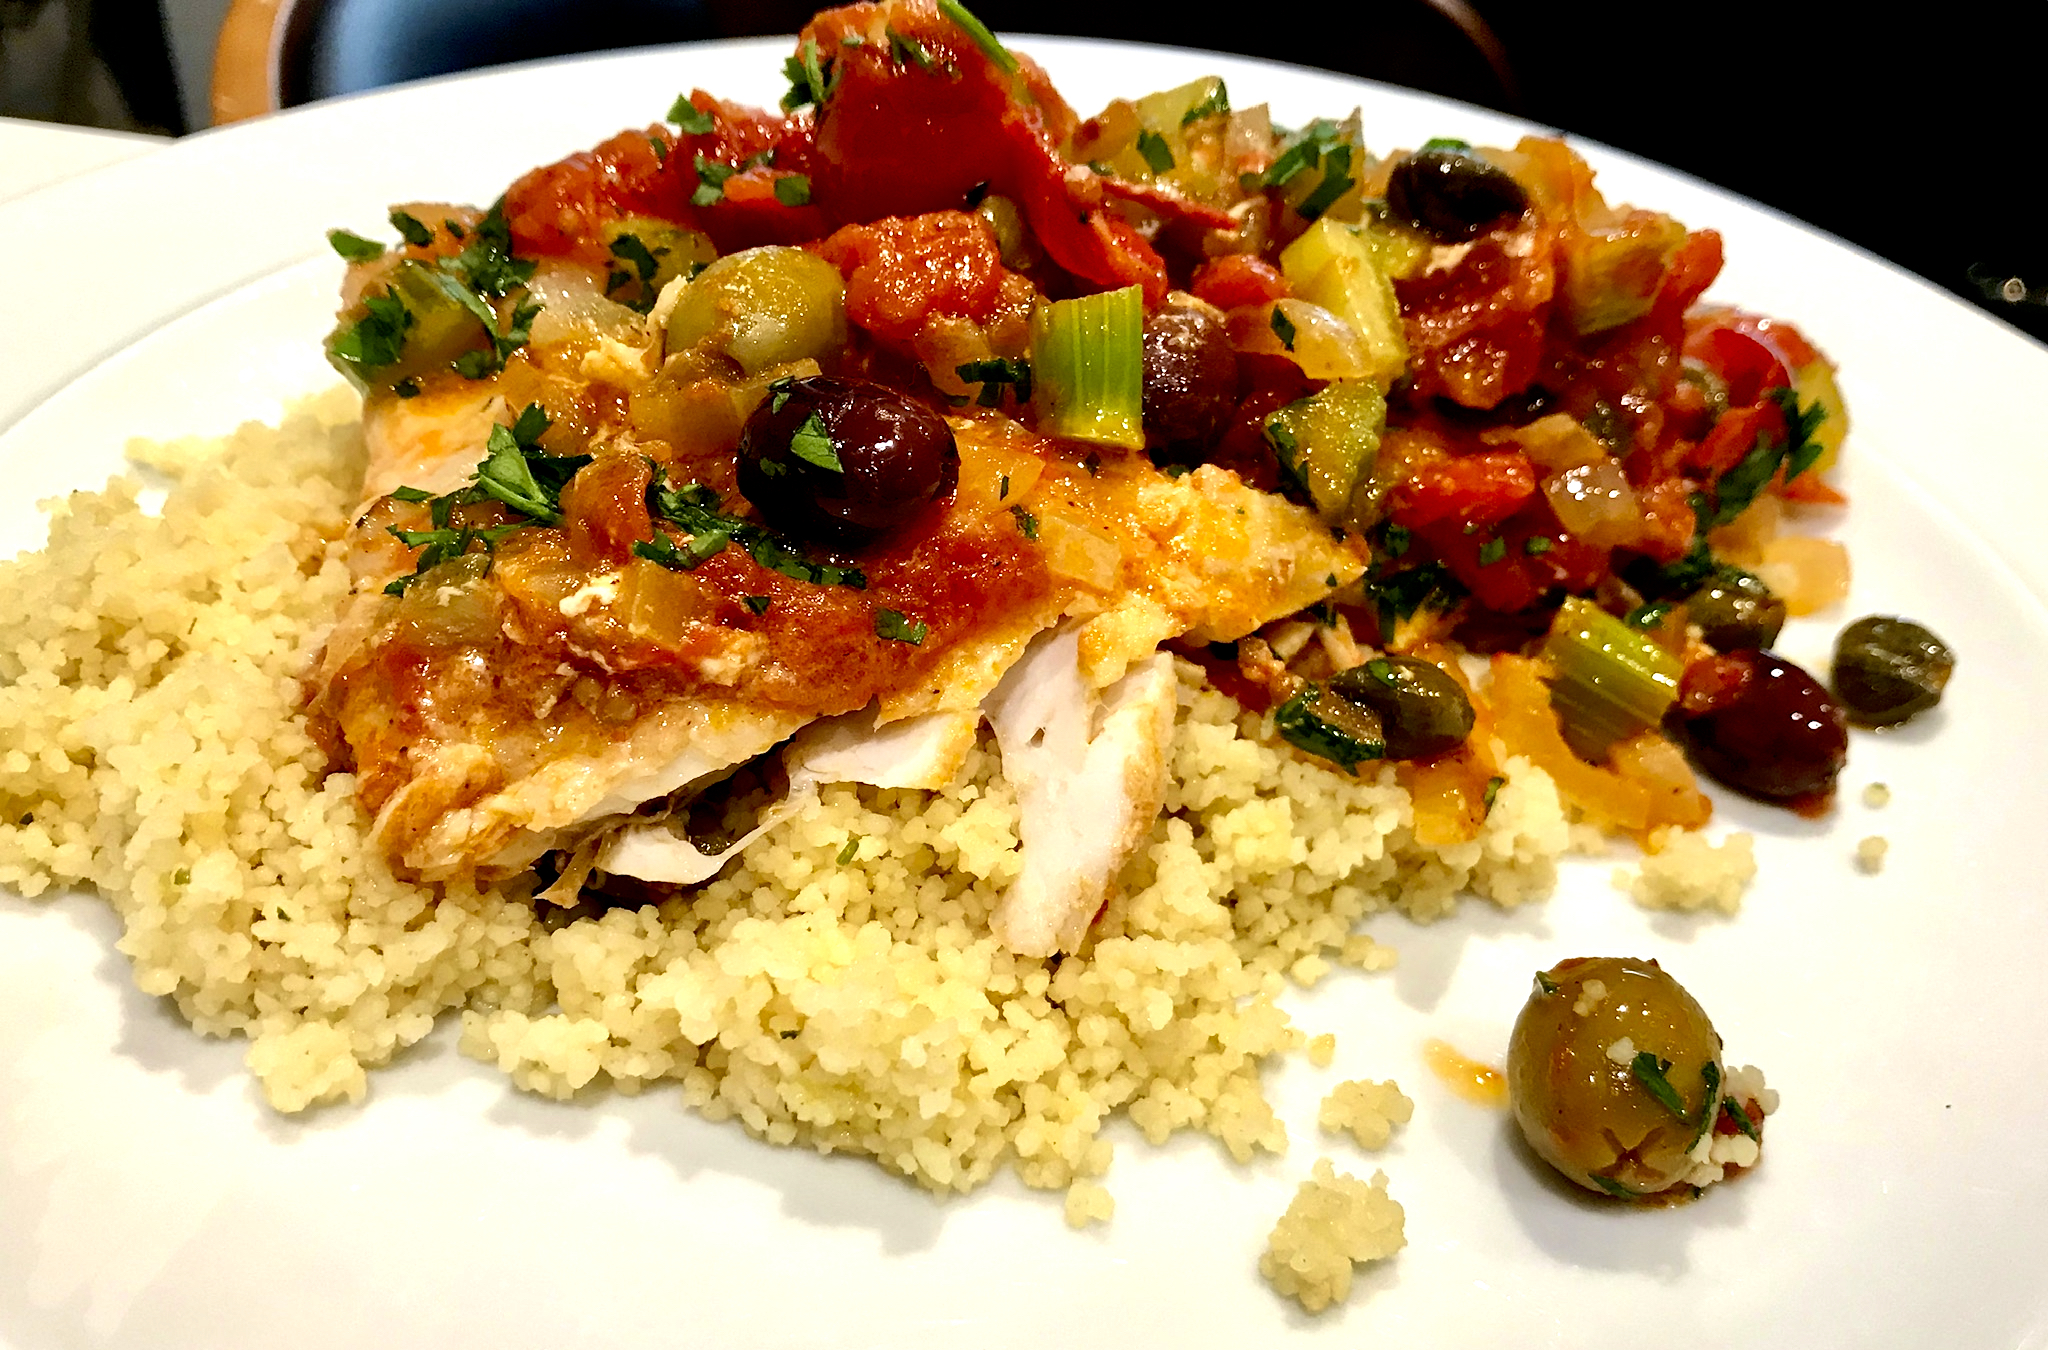 Fish in Spicy Tomato Sauce with Capers and Olives